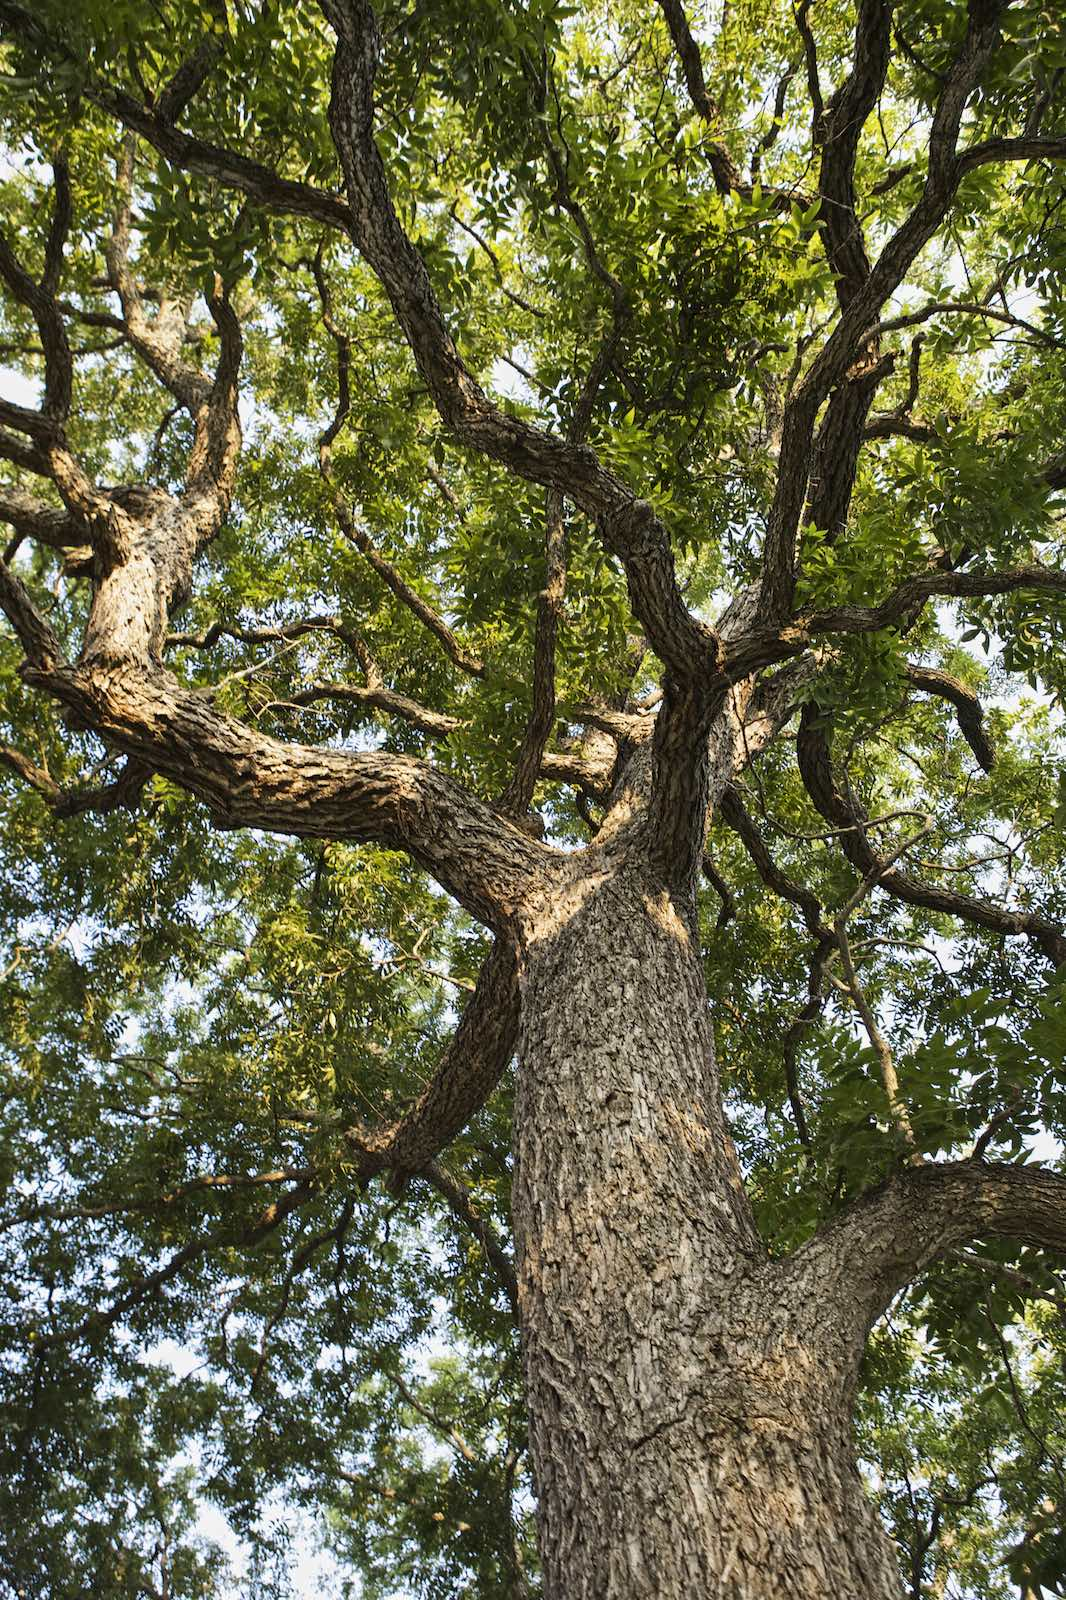 Jody Horton Photography - The canopy of an ancient Texas pecan tree.